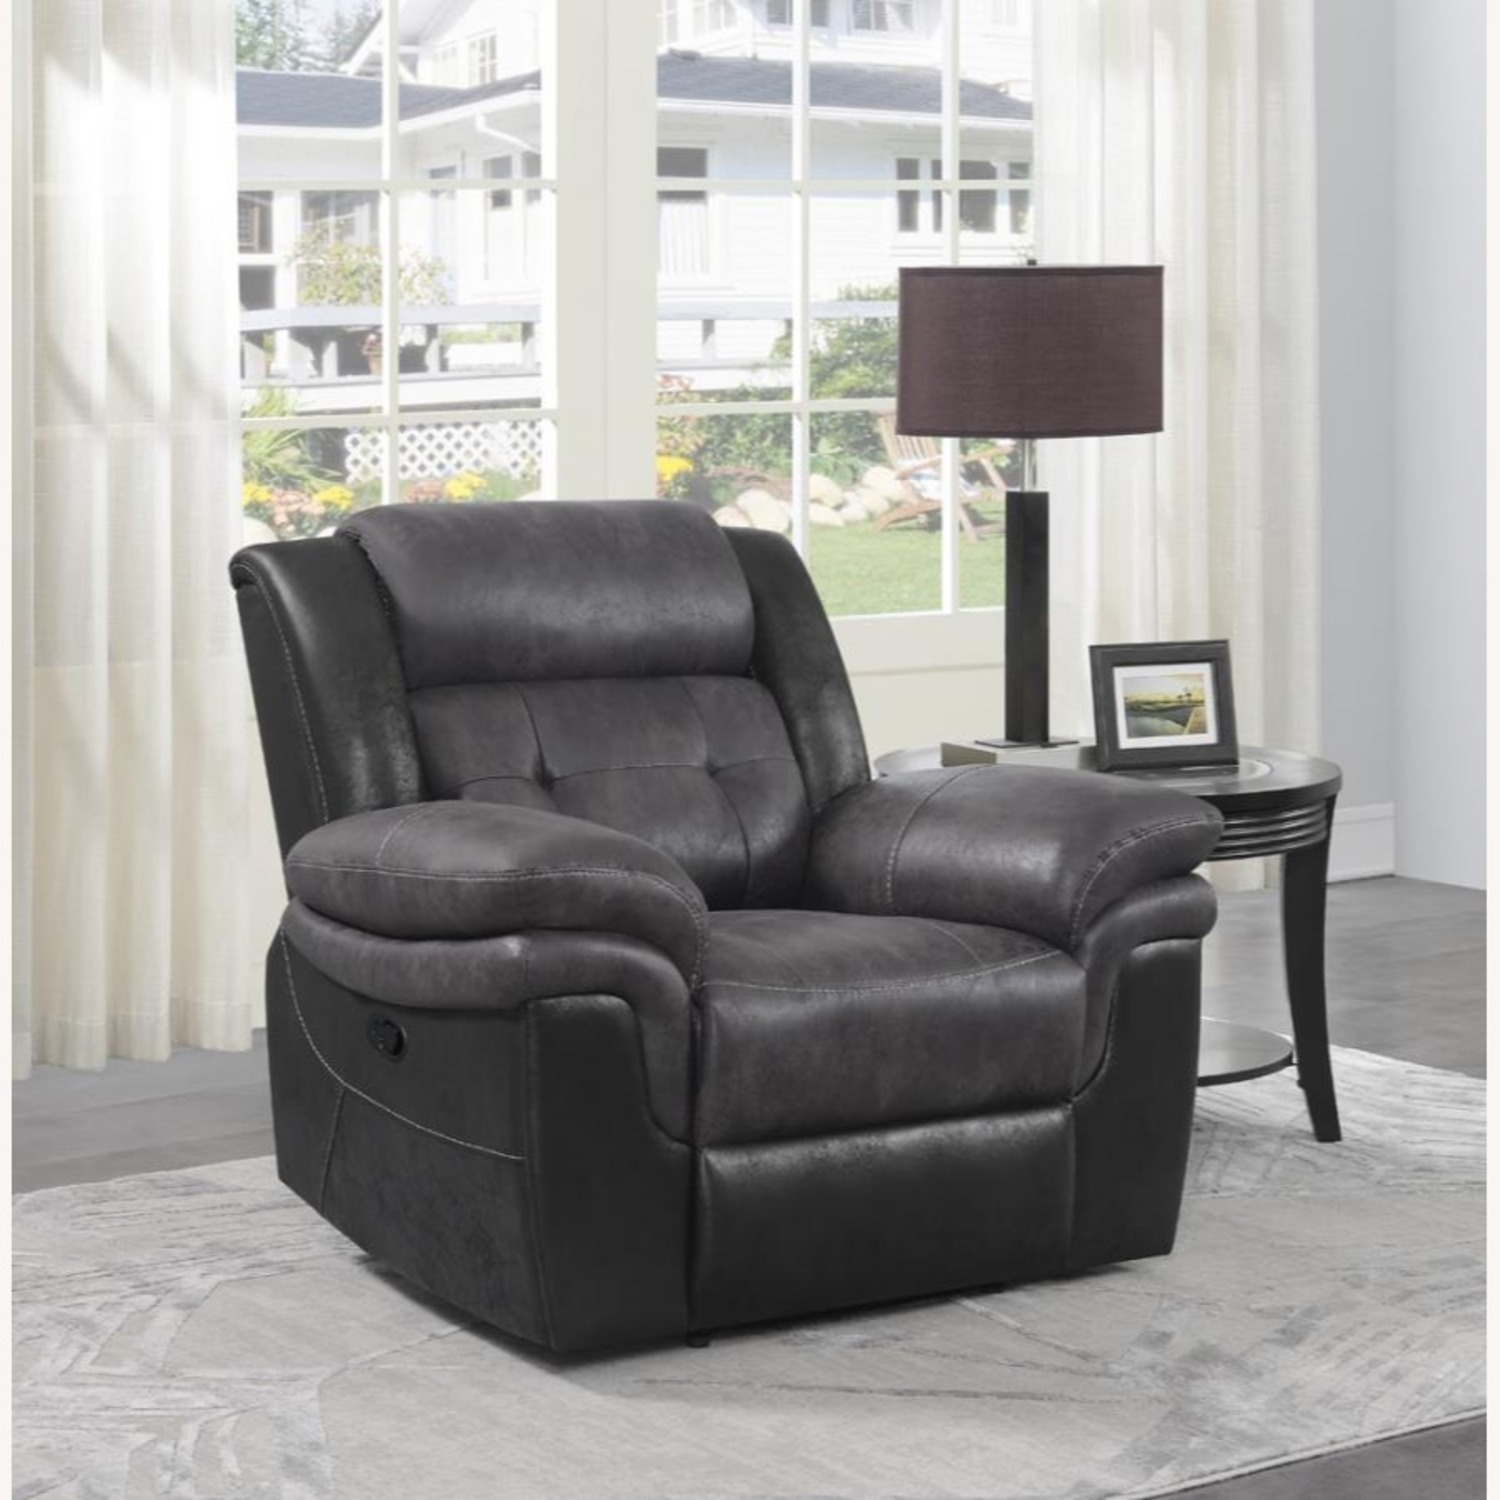 Recliner In Two-Tone Charcoal & Black Upholstery - image-7